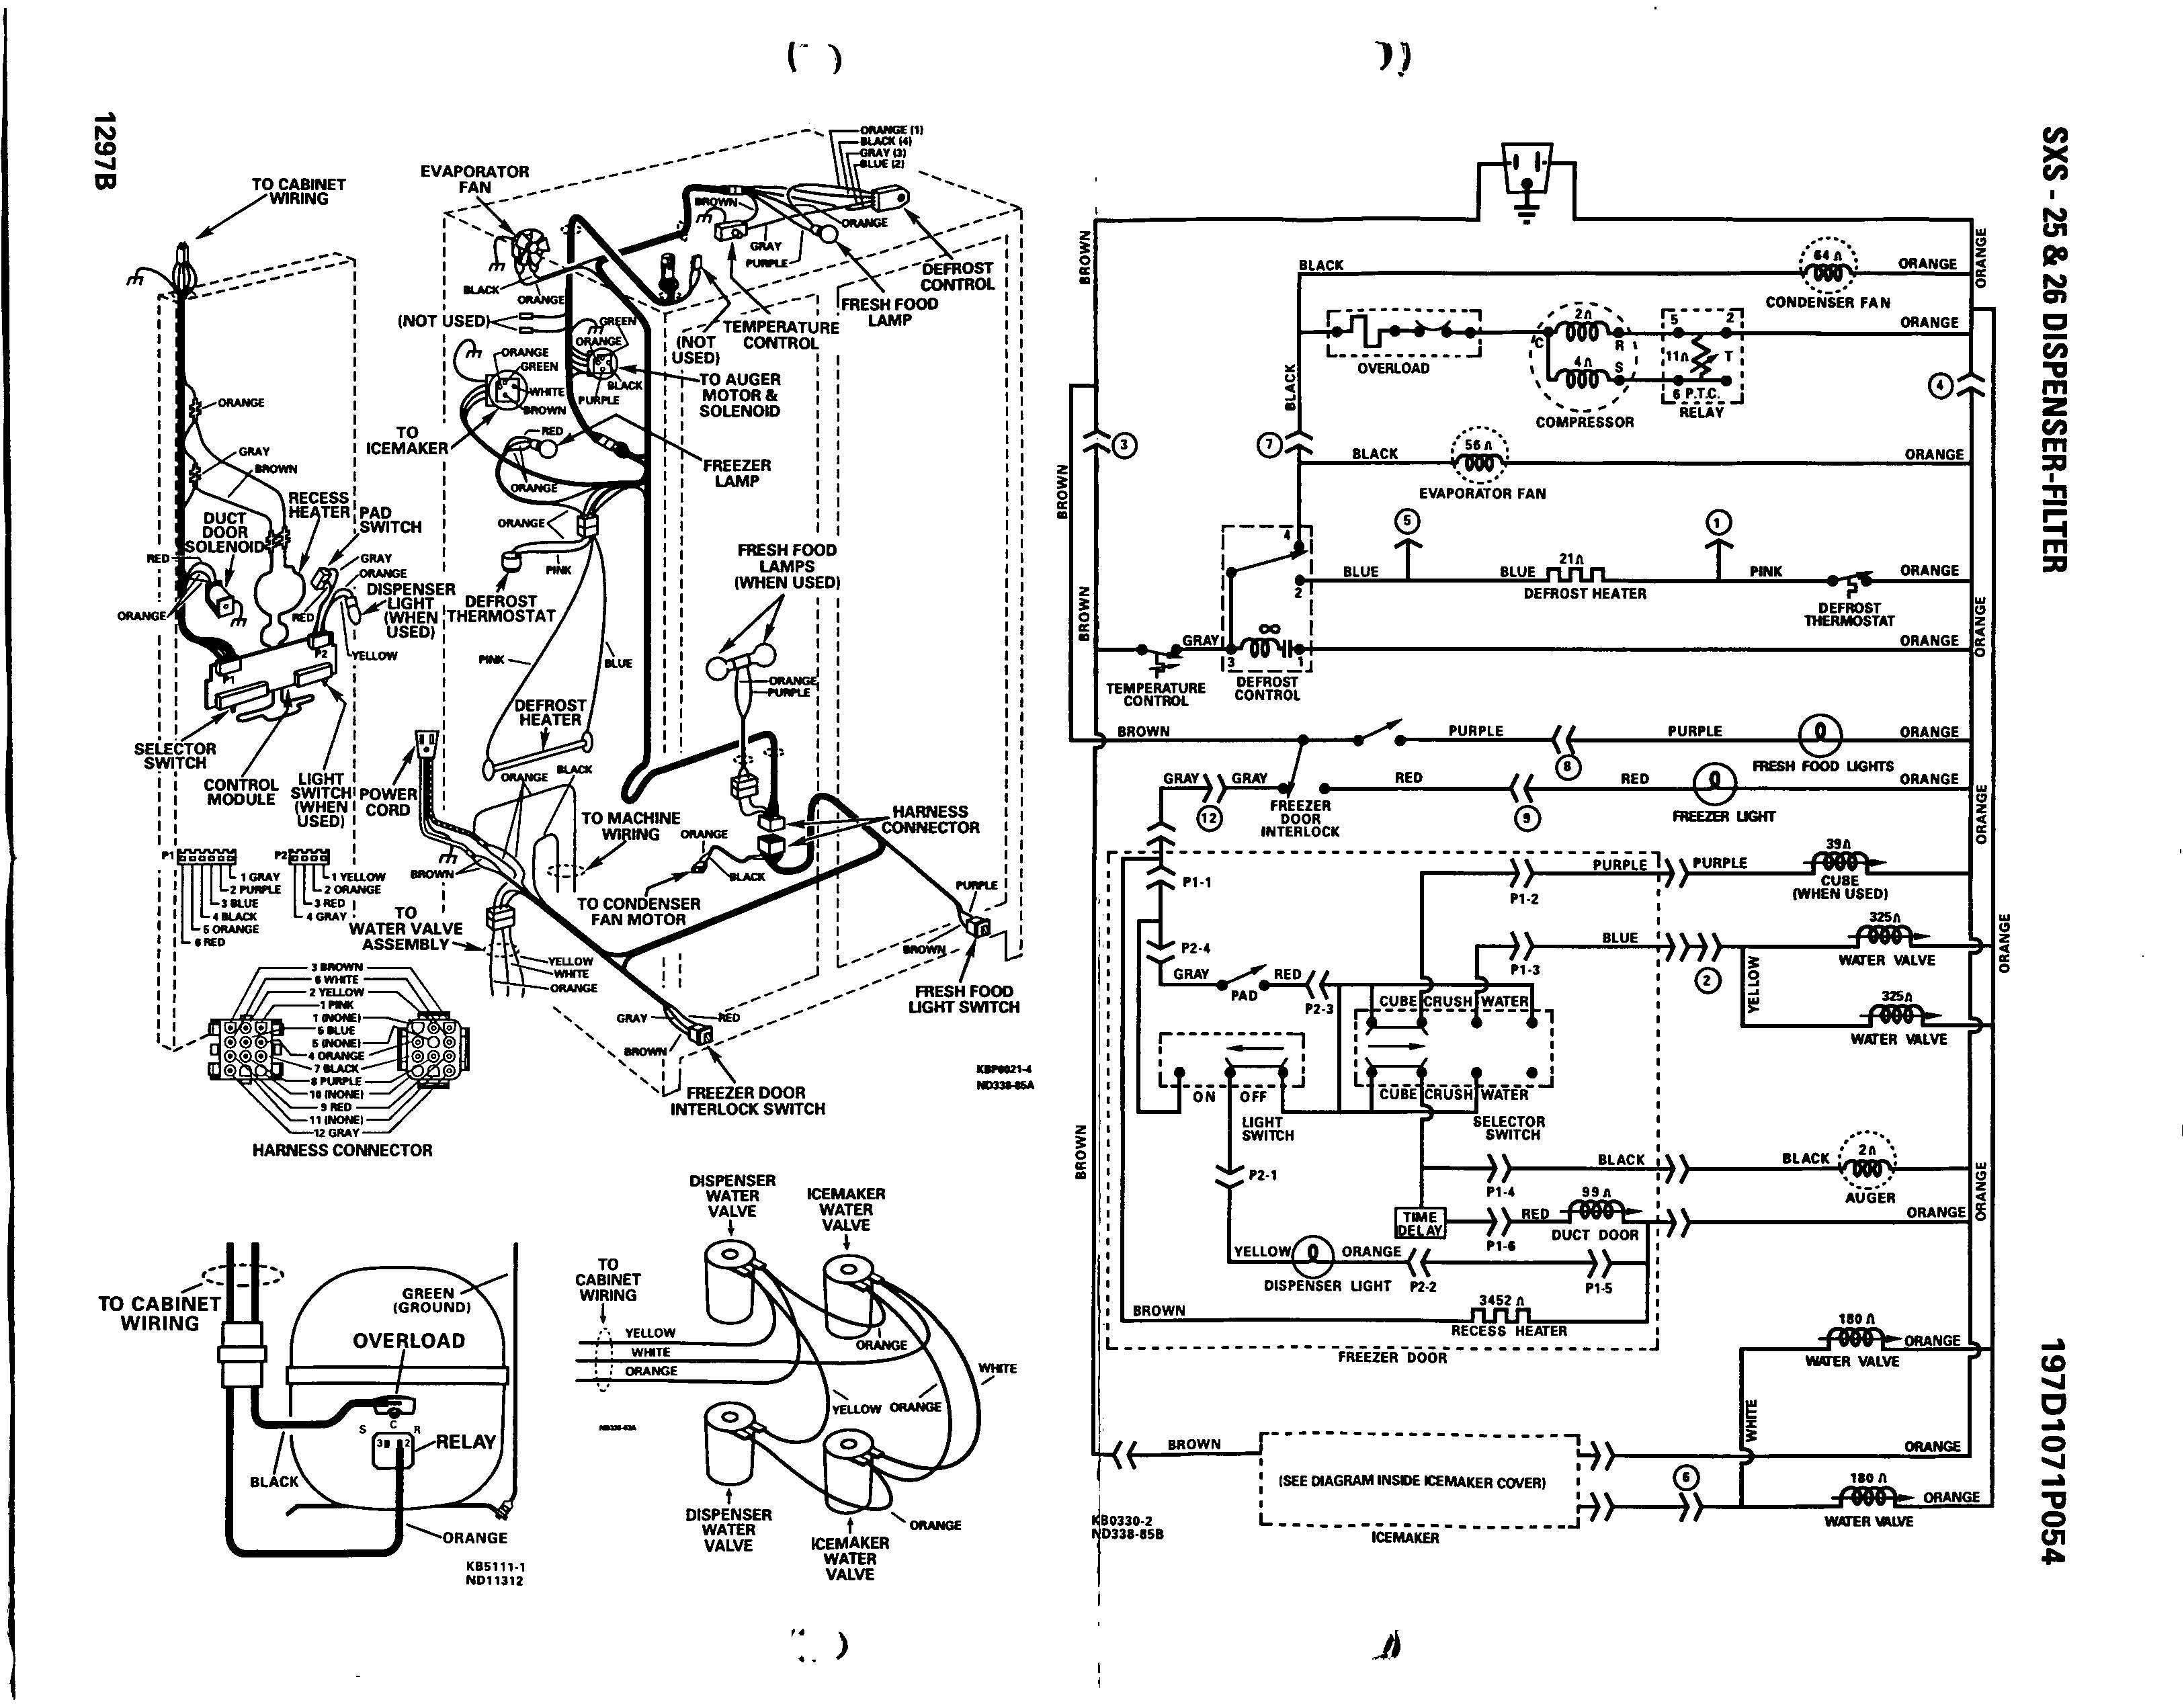 Ge Washer Motor Wiring Diagram | My Wiring DIagram on ge range schematics, ge washer screwdriver, ge washer electrical schematic, ge front load washer diagram, electric dryer wiring schematic, maytag wiring schematic, ge washer motor schematic, whirlpool dishwasher wiring schematic, ge washer model wdsr2080d5ww, garage door opener wiring schematic, ge microwave schematic, ge top load washer diagram, lg dryer wiring schematic, whirlpool refrigerator wiring schematic, ge schematic diagrams,